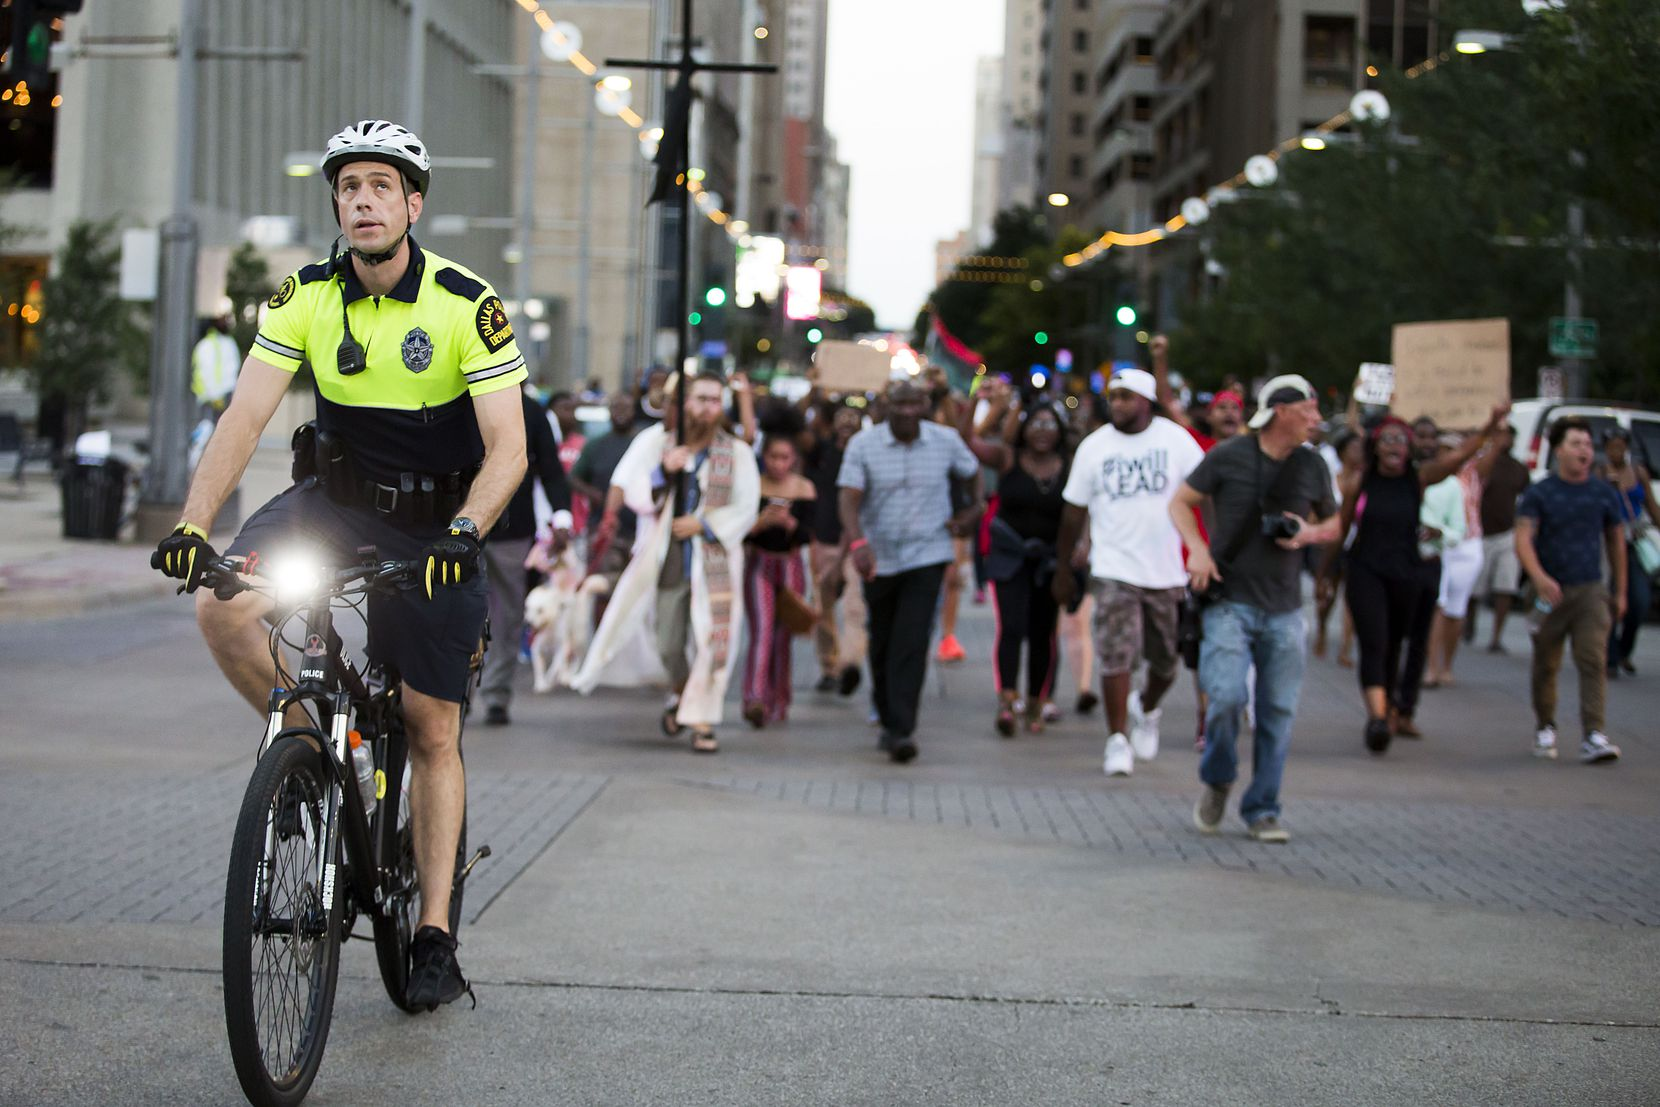 Some Dallas police officers were on bikes to help provide traffic control and security for the Black Lives Matter protesters who began marching peacefully through downtown about 7 p.m. July 7, 2016. Just before 9 p.m., a gunman began shooting at police officers.